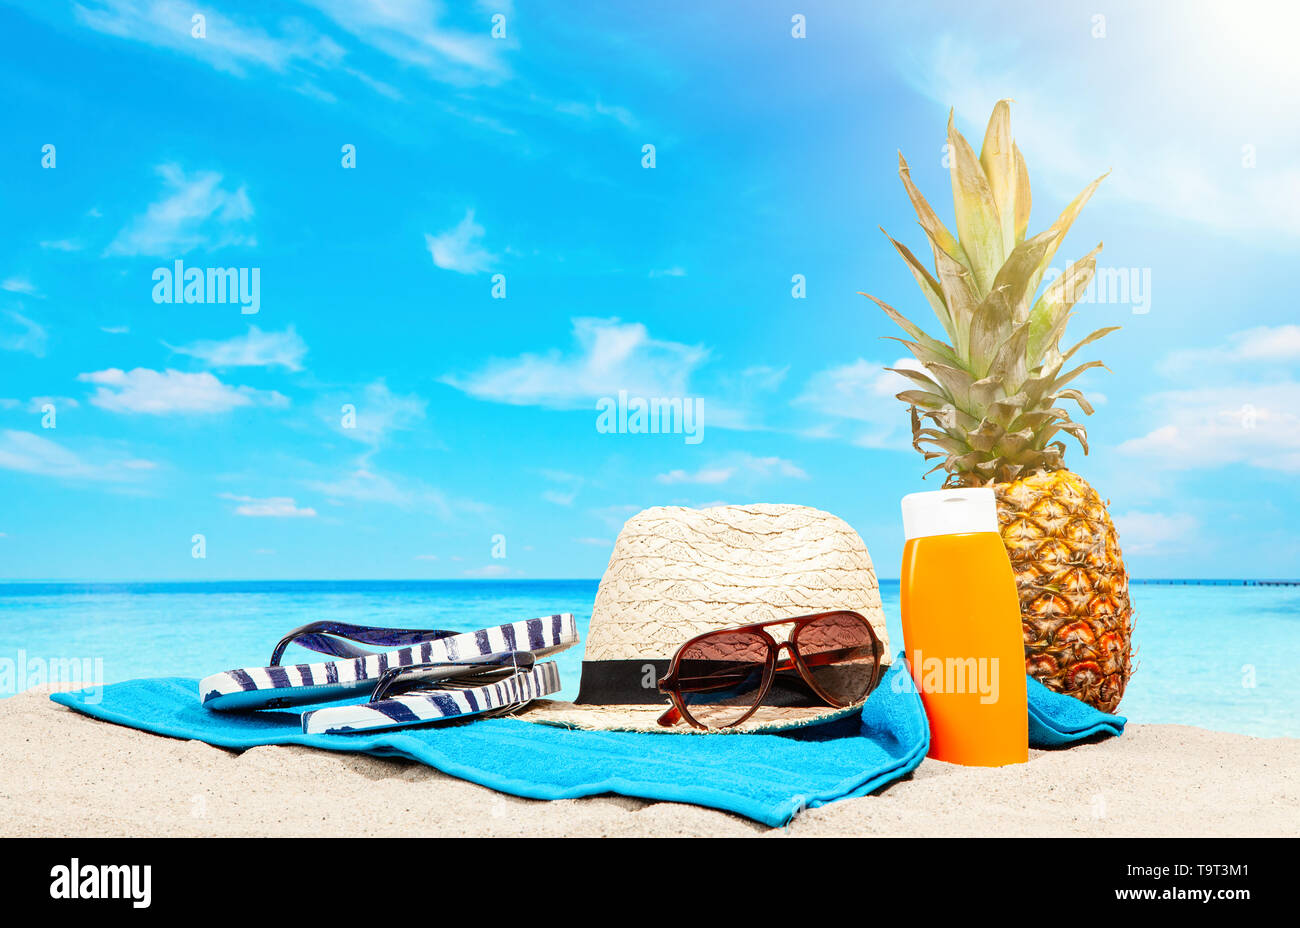 Beach accessories lying on sand - Stock Image